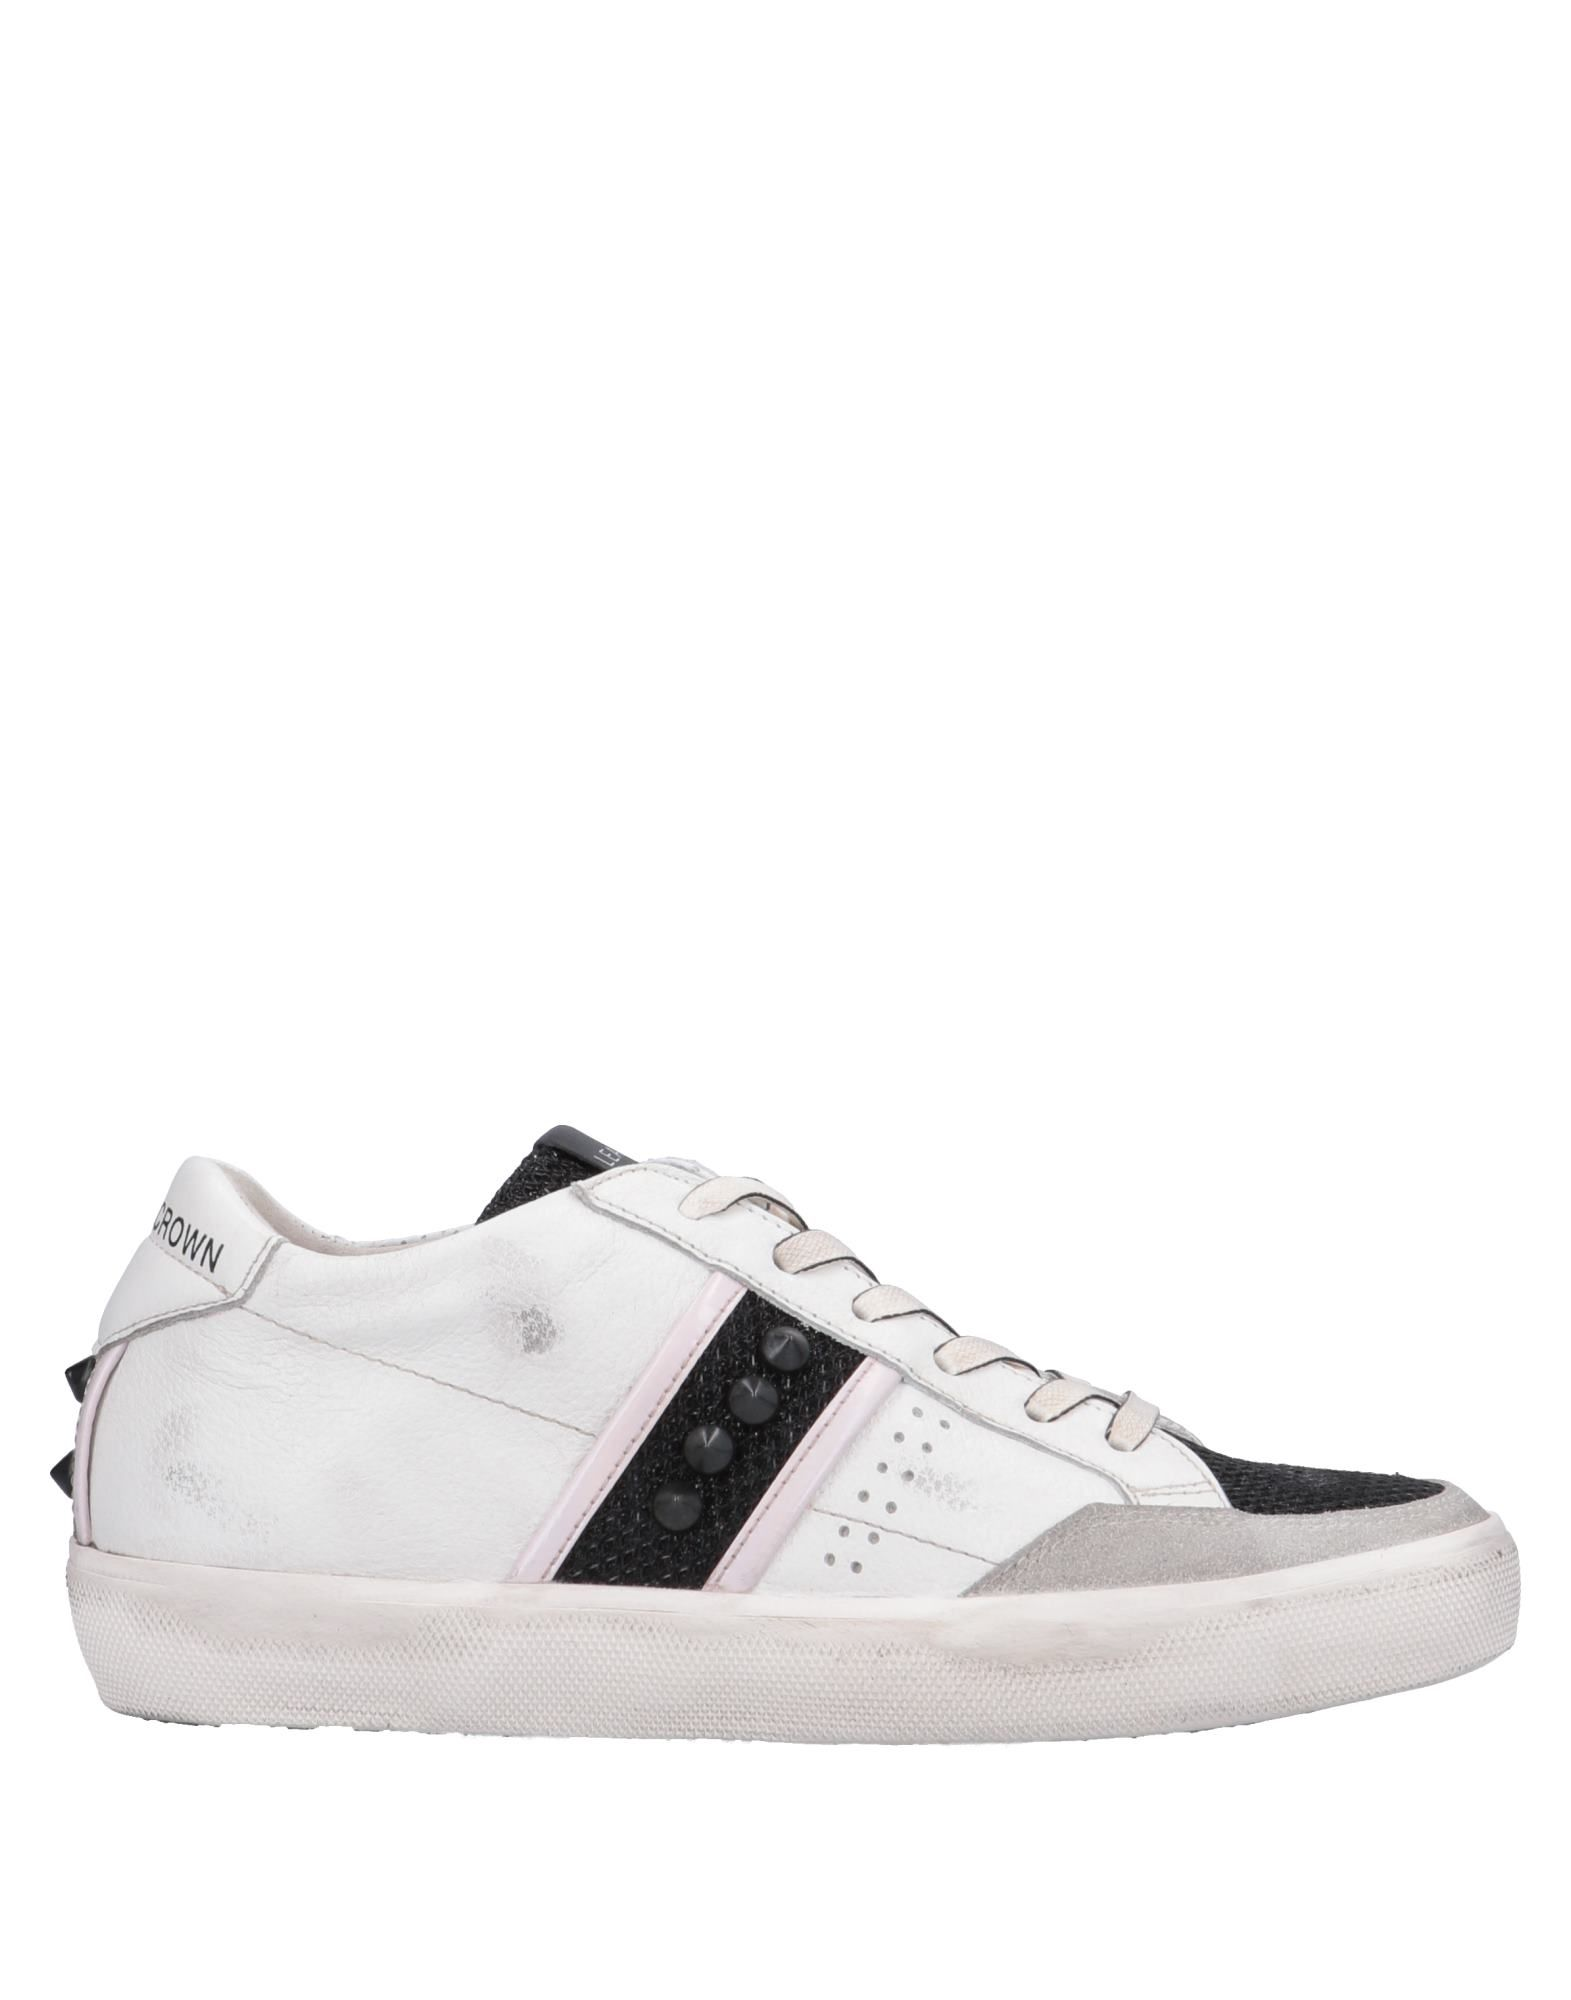 Leather Crown Sneakers Sneakers - Women Leather Crown Sneakers Sneakers online on  United Kingdom - 11563915JD ec42e3